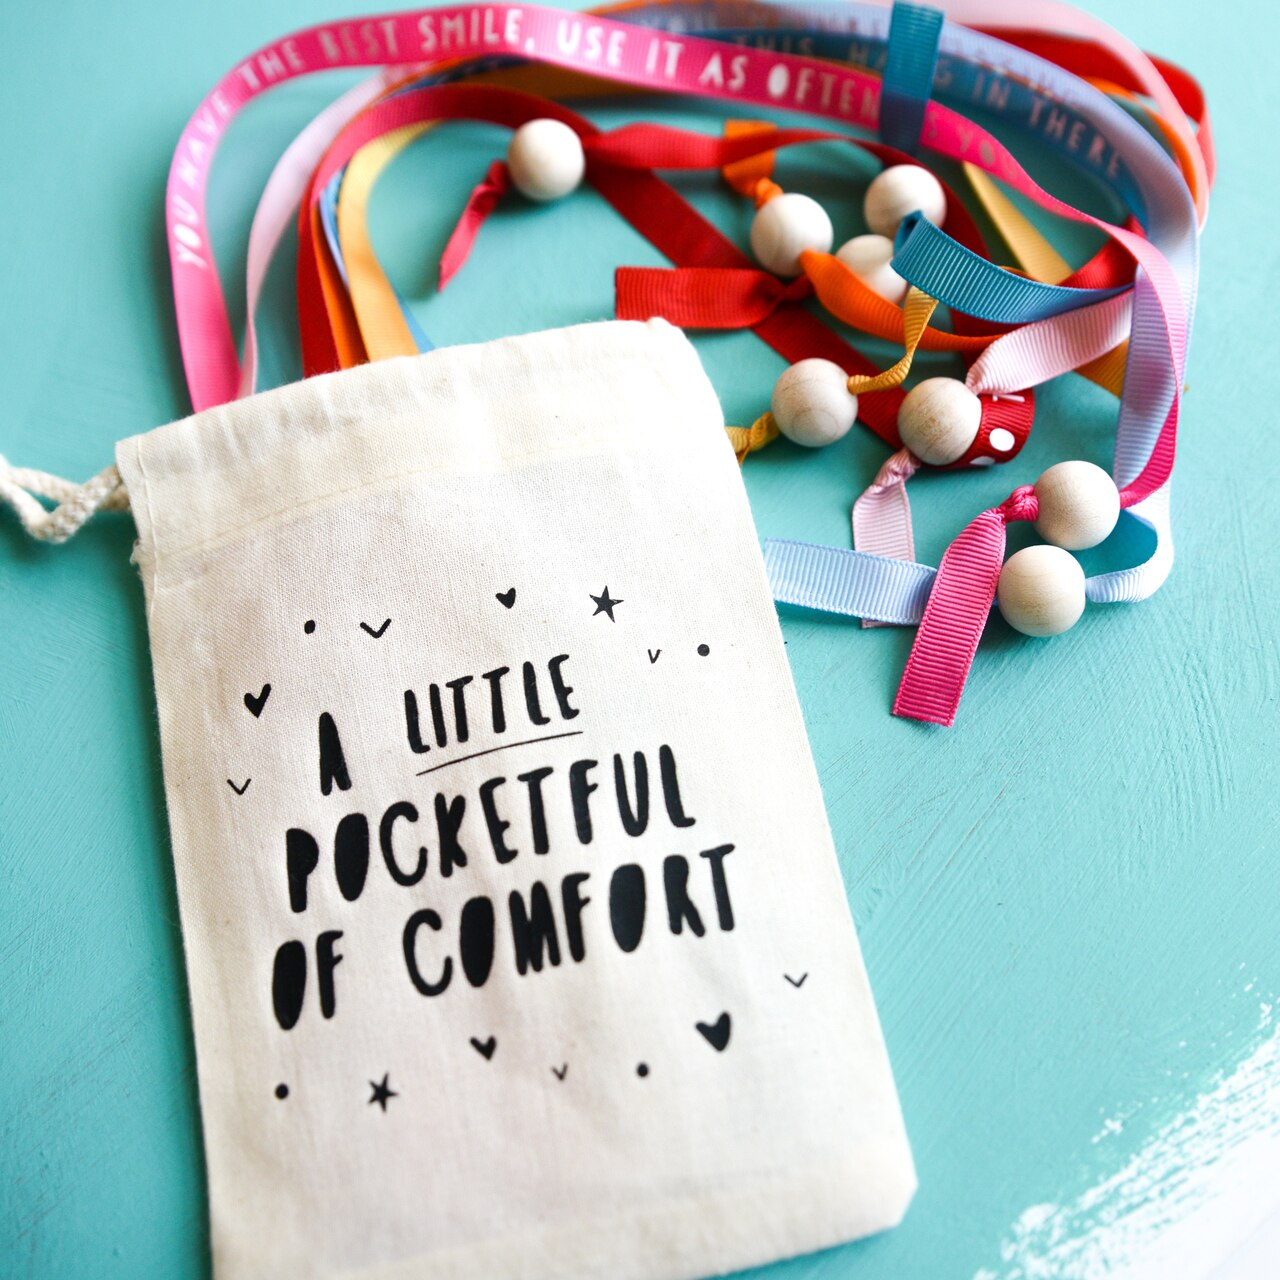 A Little Pocketful Of Comfort